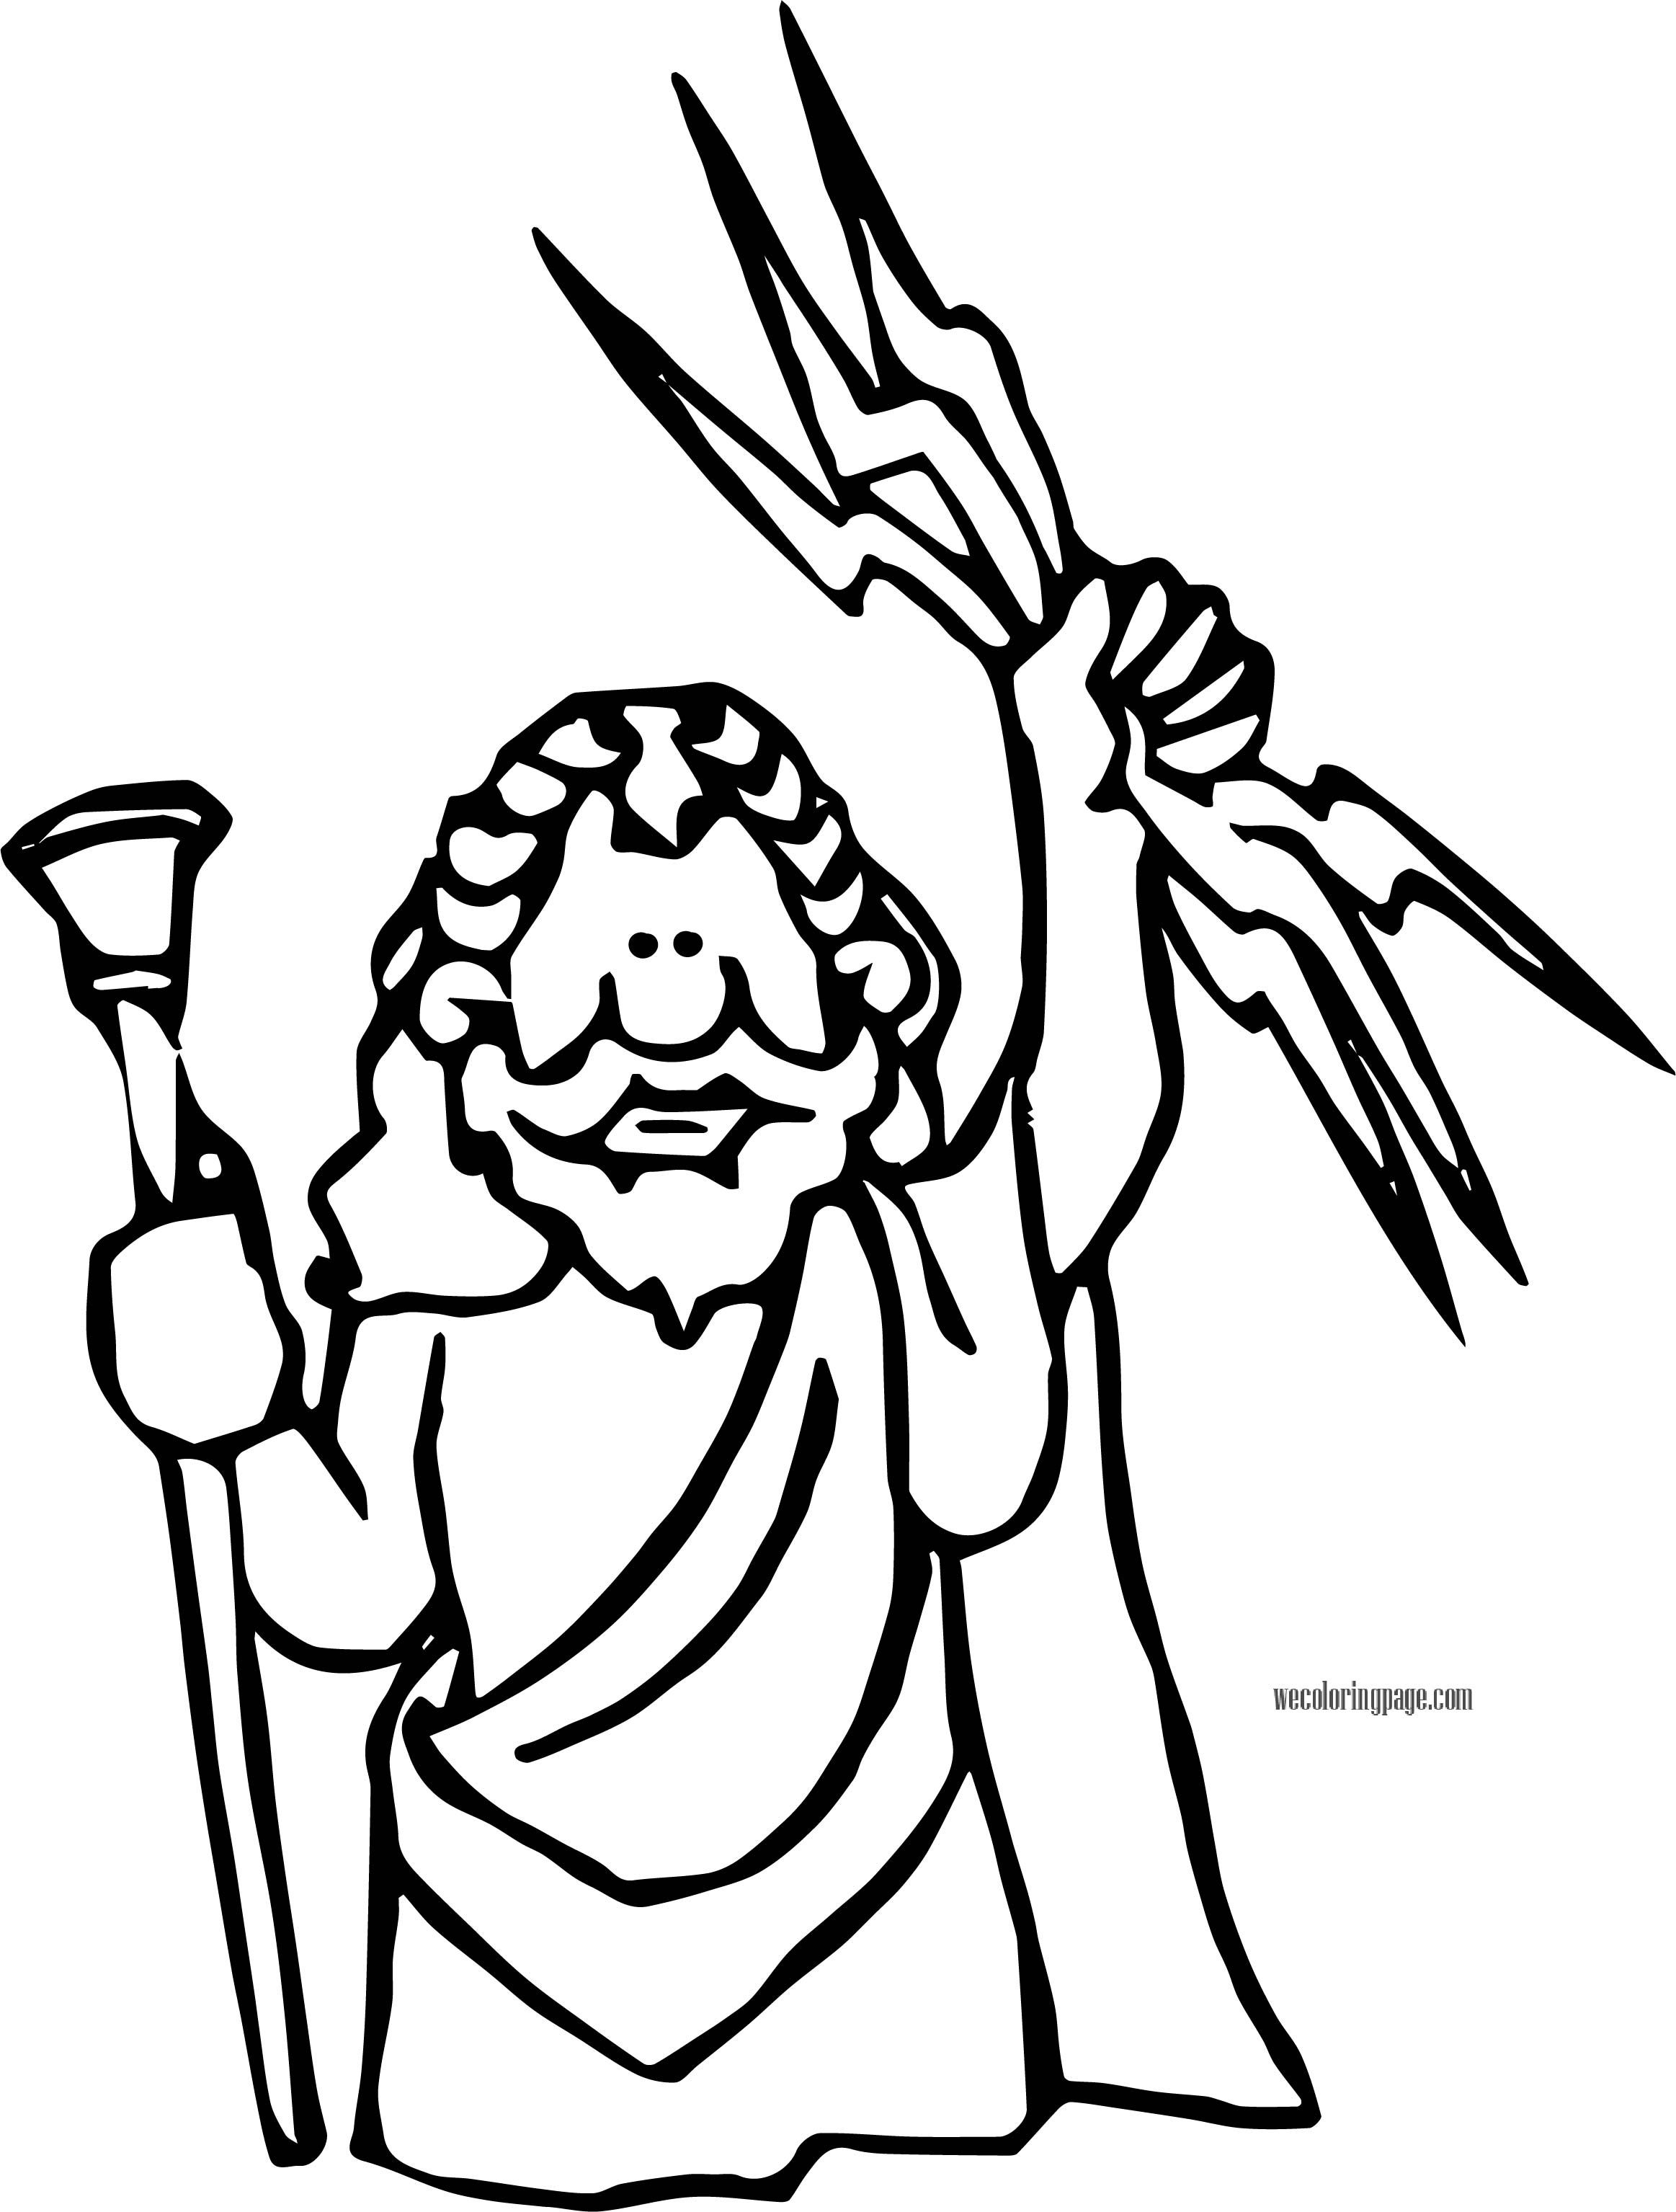 Google Image Result For Http Coloring Thecolor Com Color Images Zeus Gif Greek Art Ancient Greece Class Art Projects